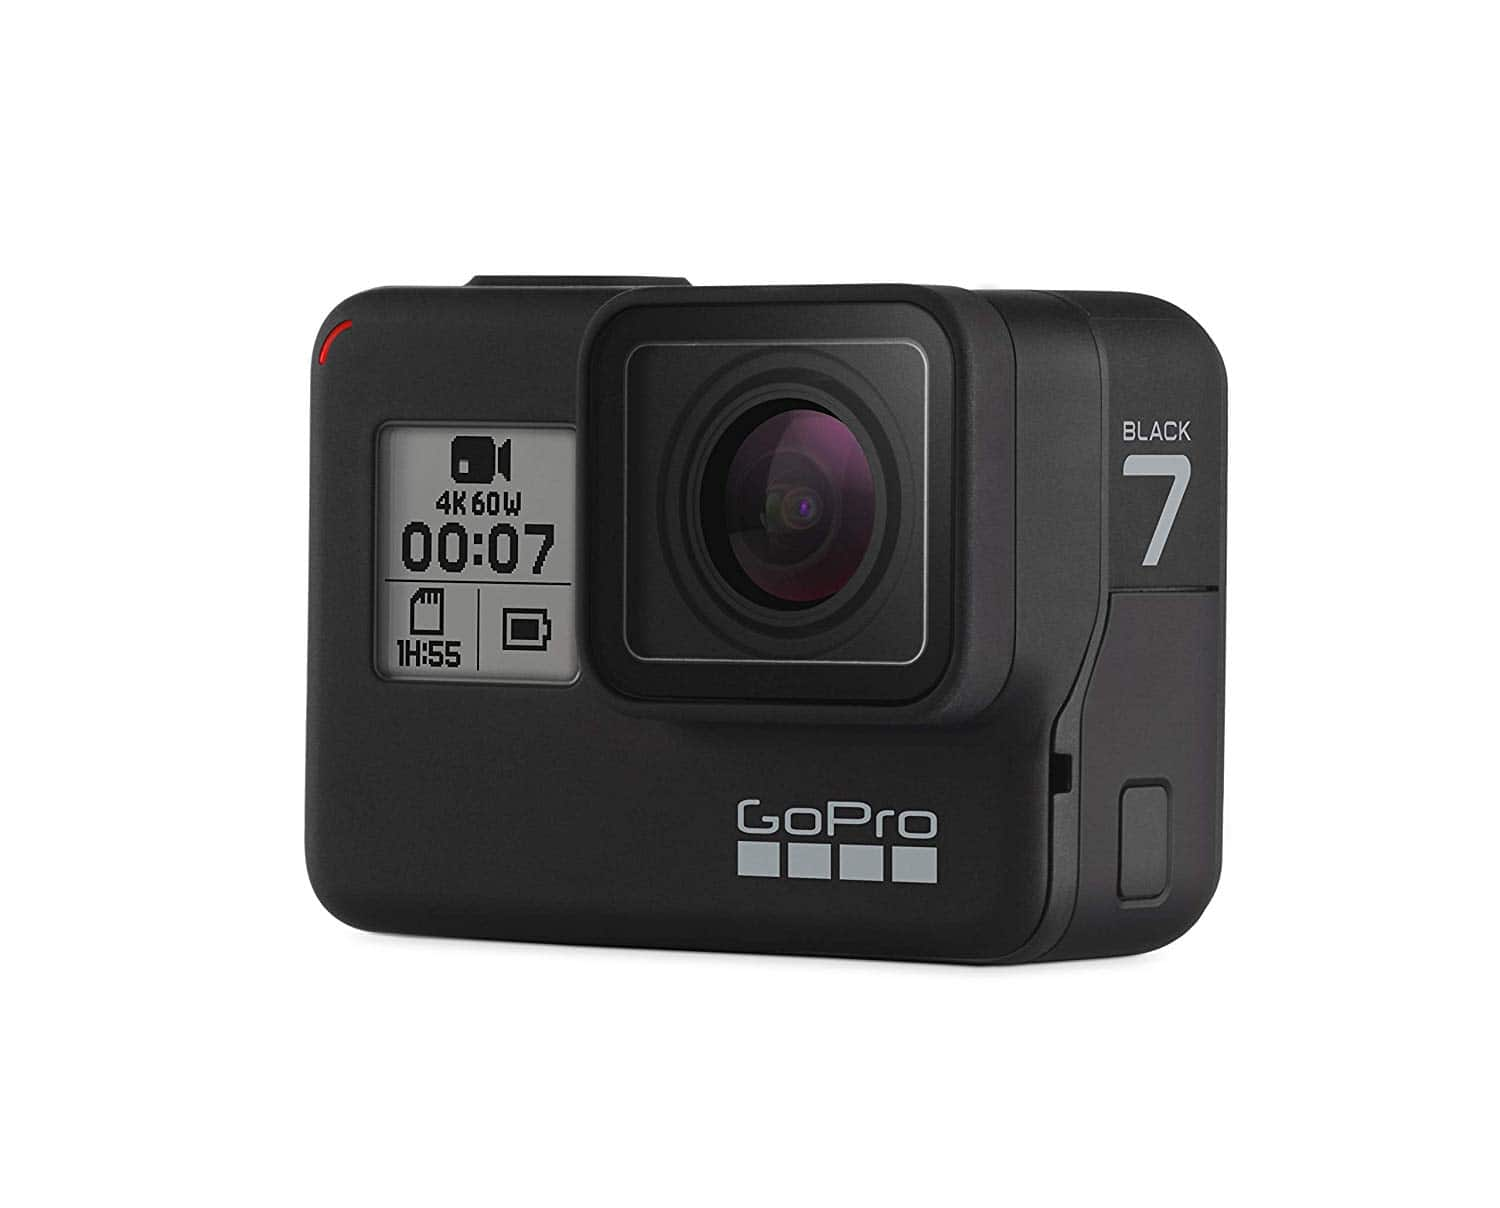 GoPro Hero 7 Black - $350 - Free Shipping